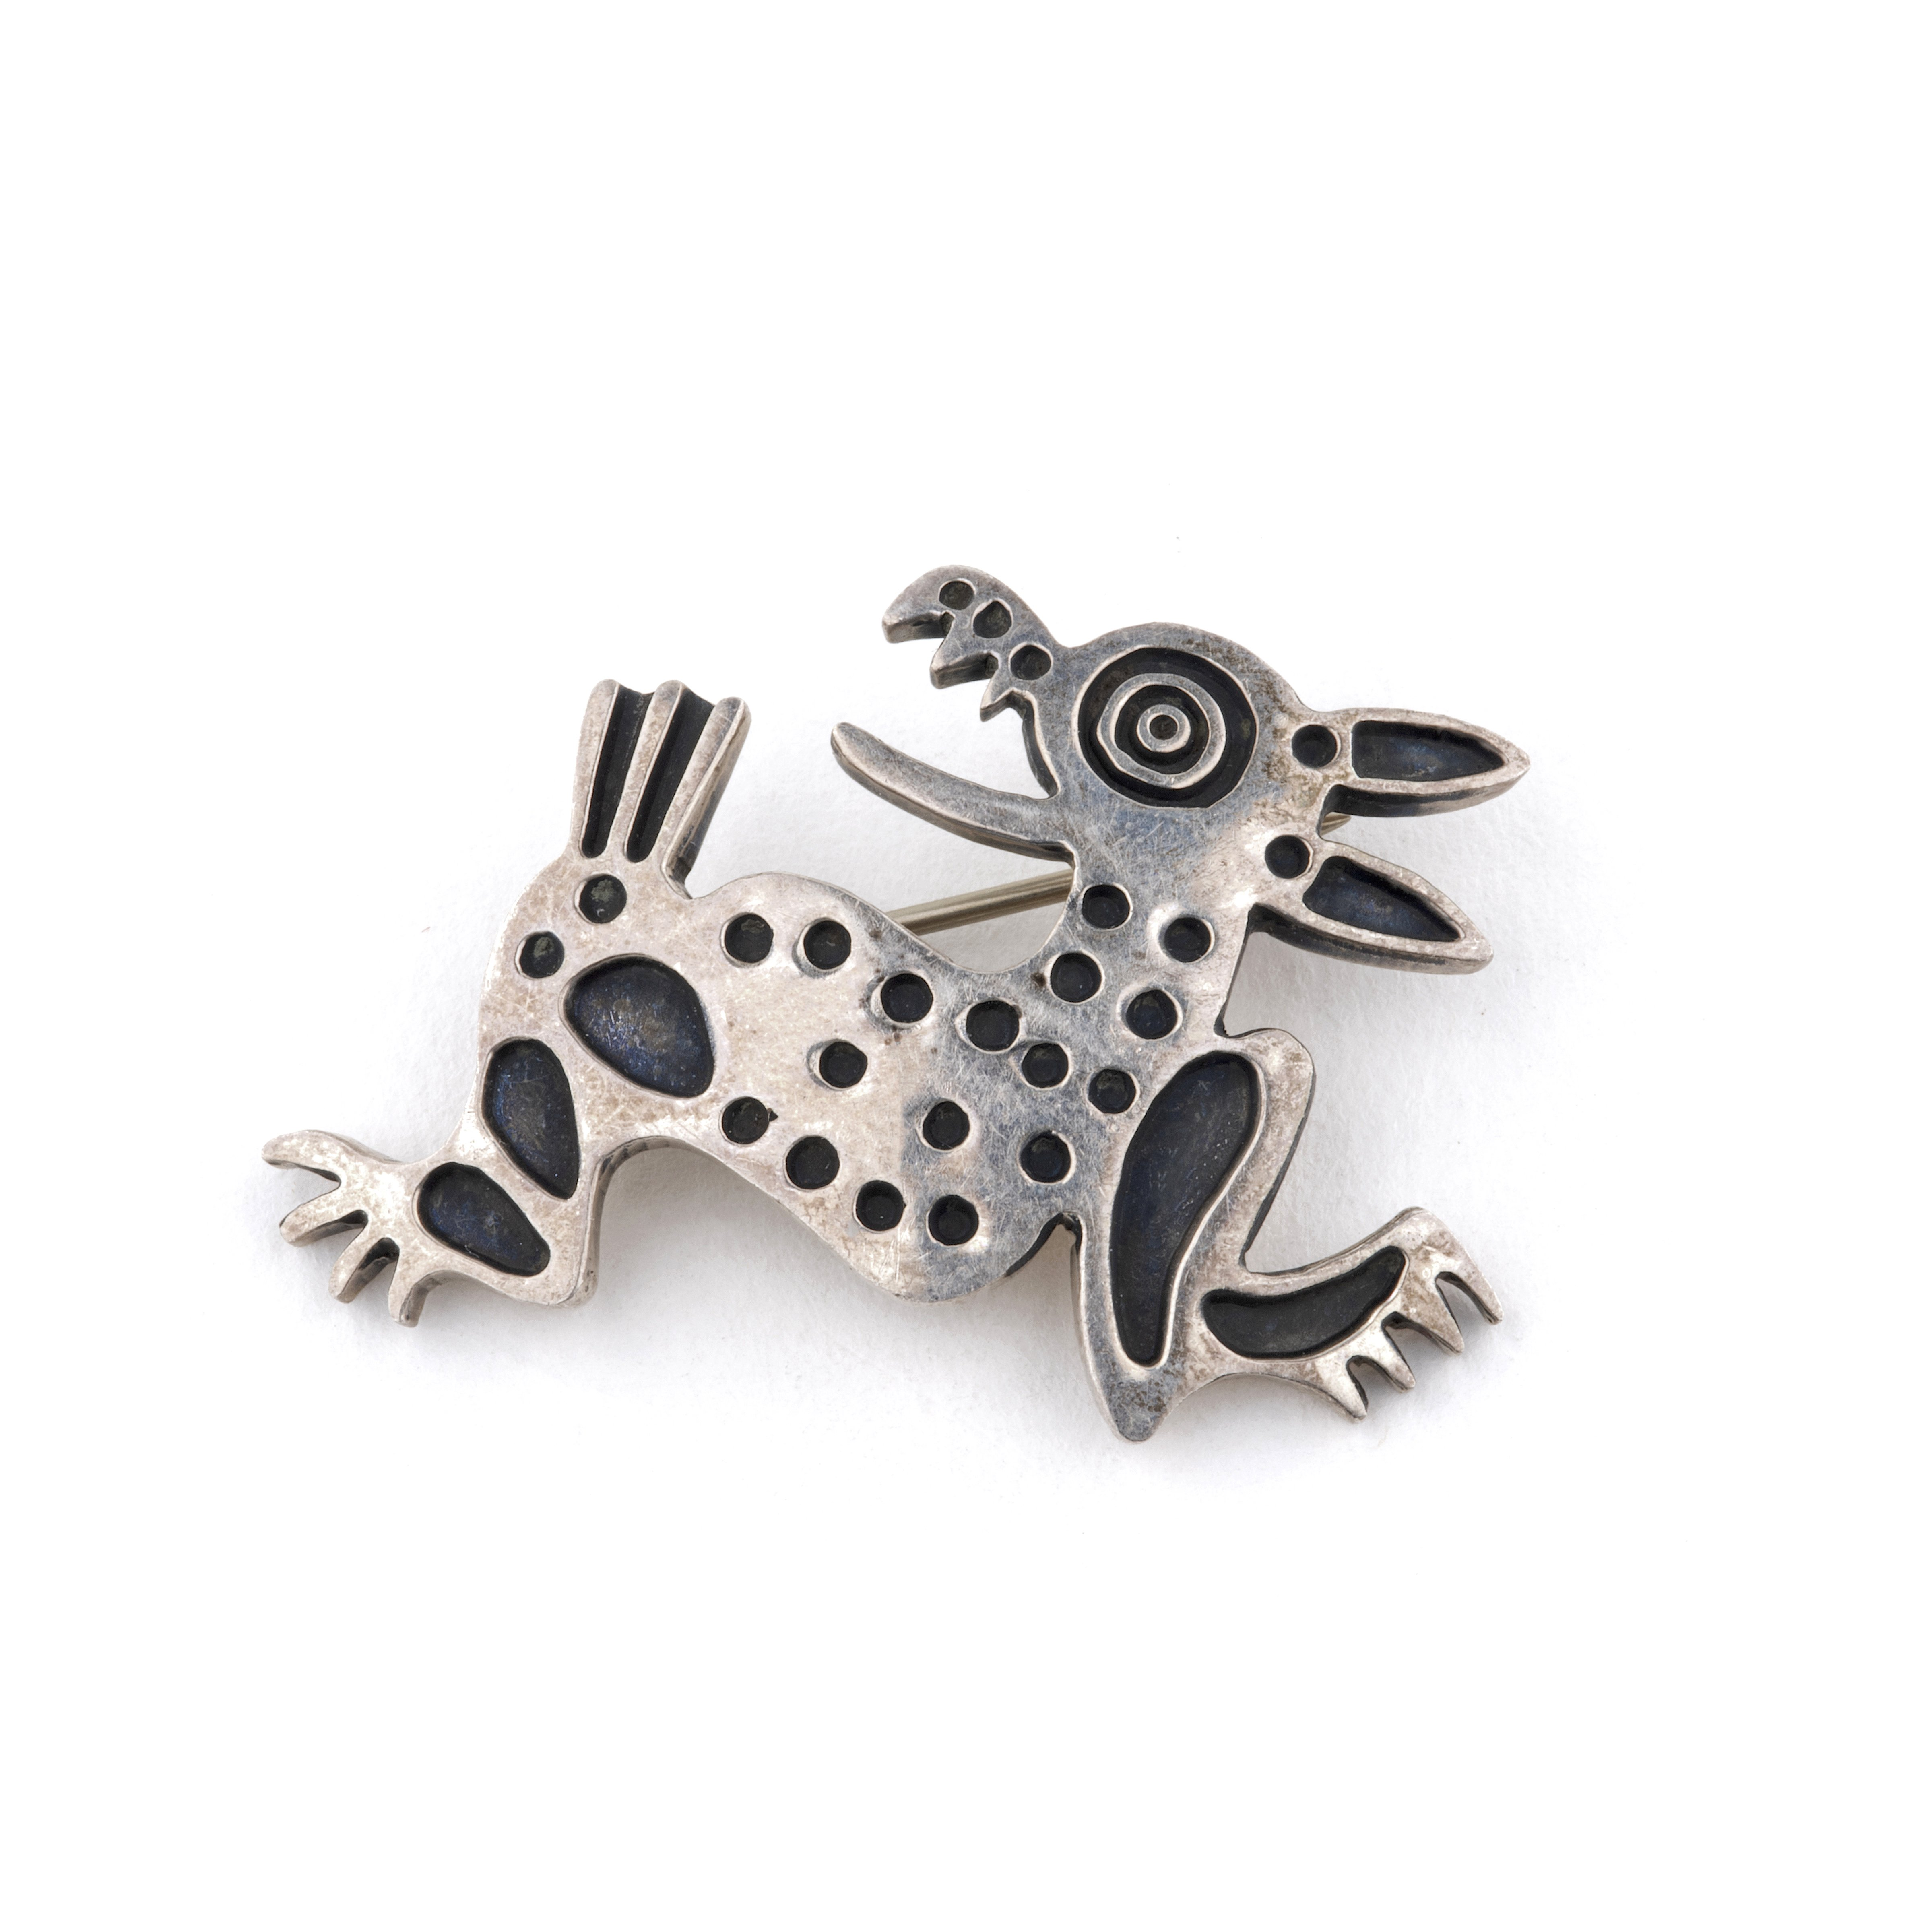 A Vintage Mexican Sterling Silver 925 Folk Art Crazy Dog Pin